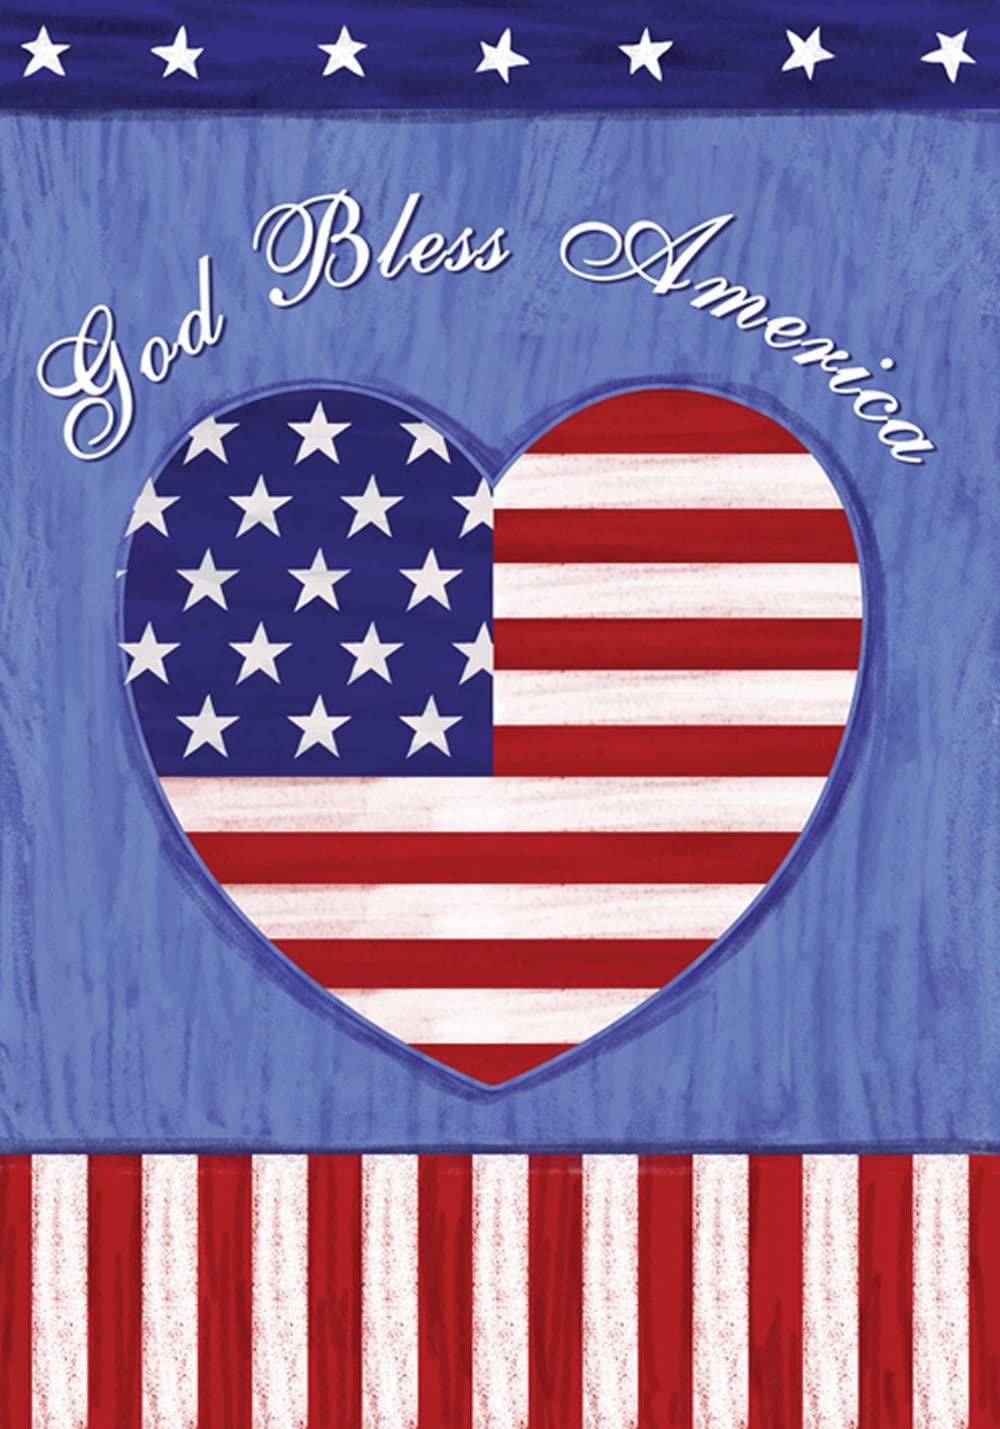 "Toland Home Garden 112625 God Bless The US Flag, Garden (12.5"" x 18"")"